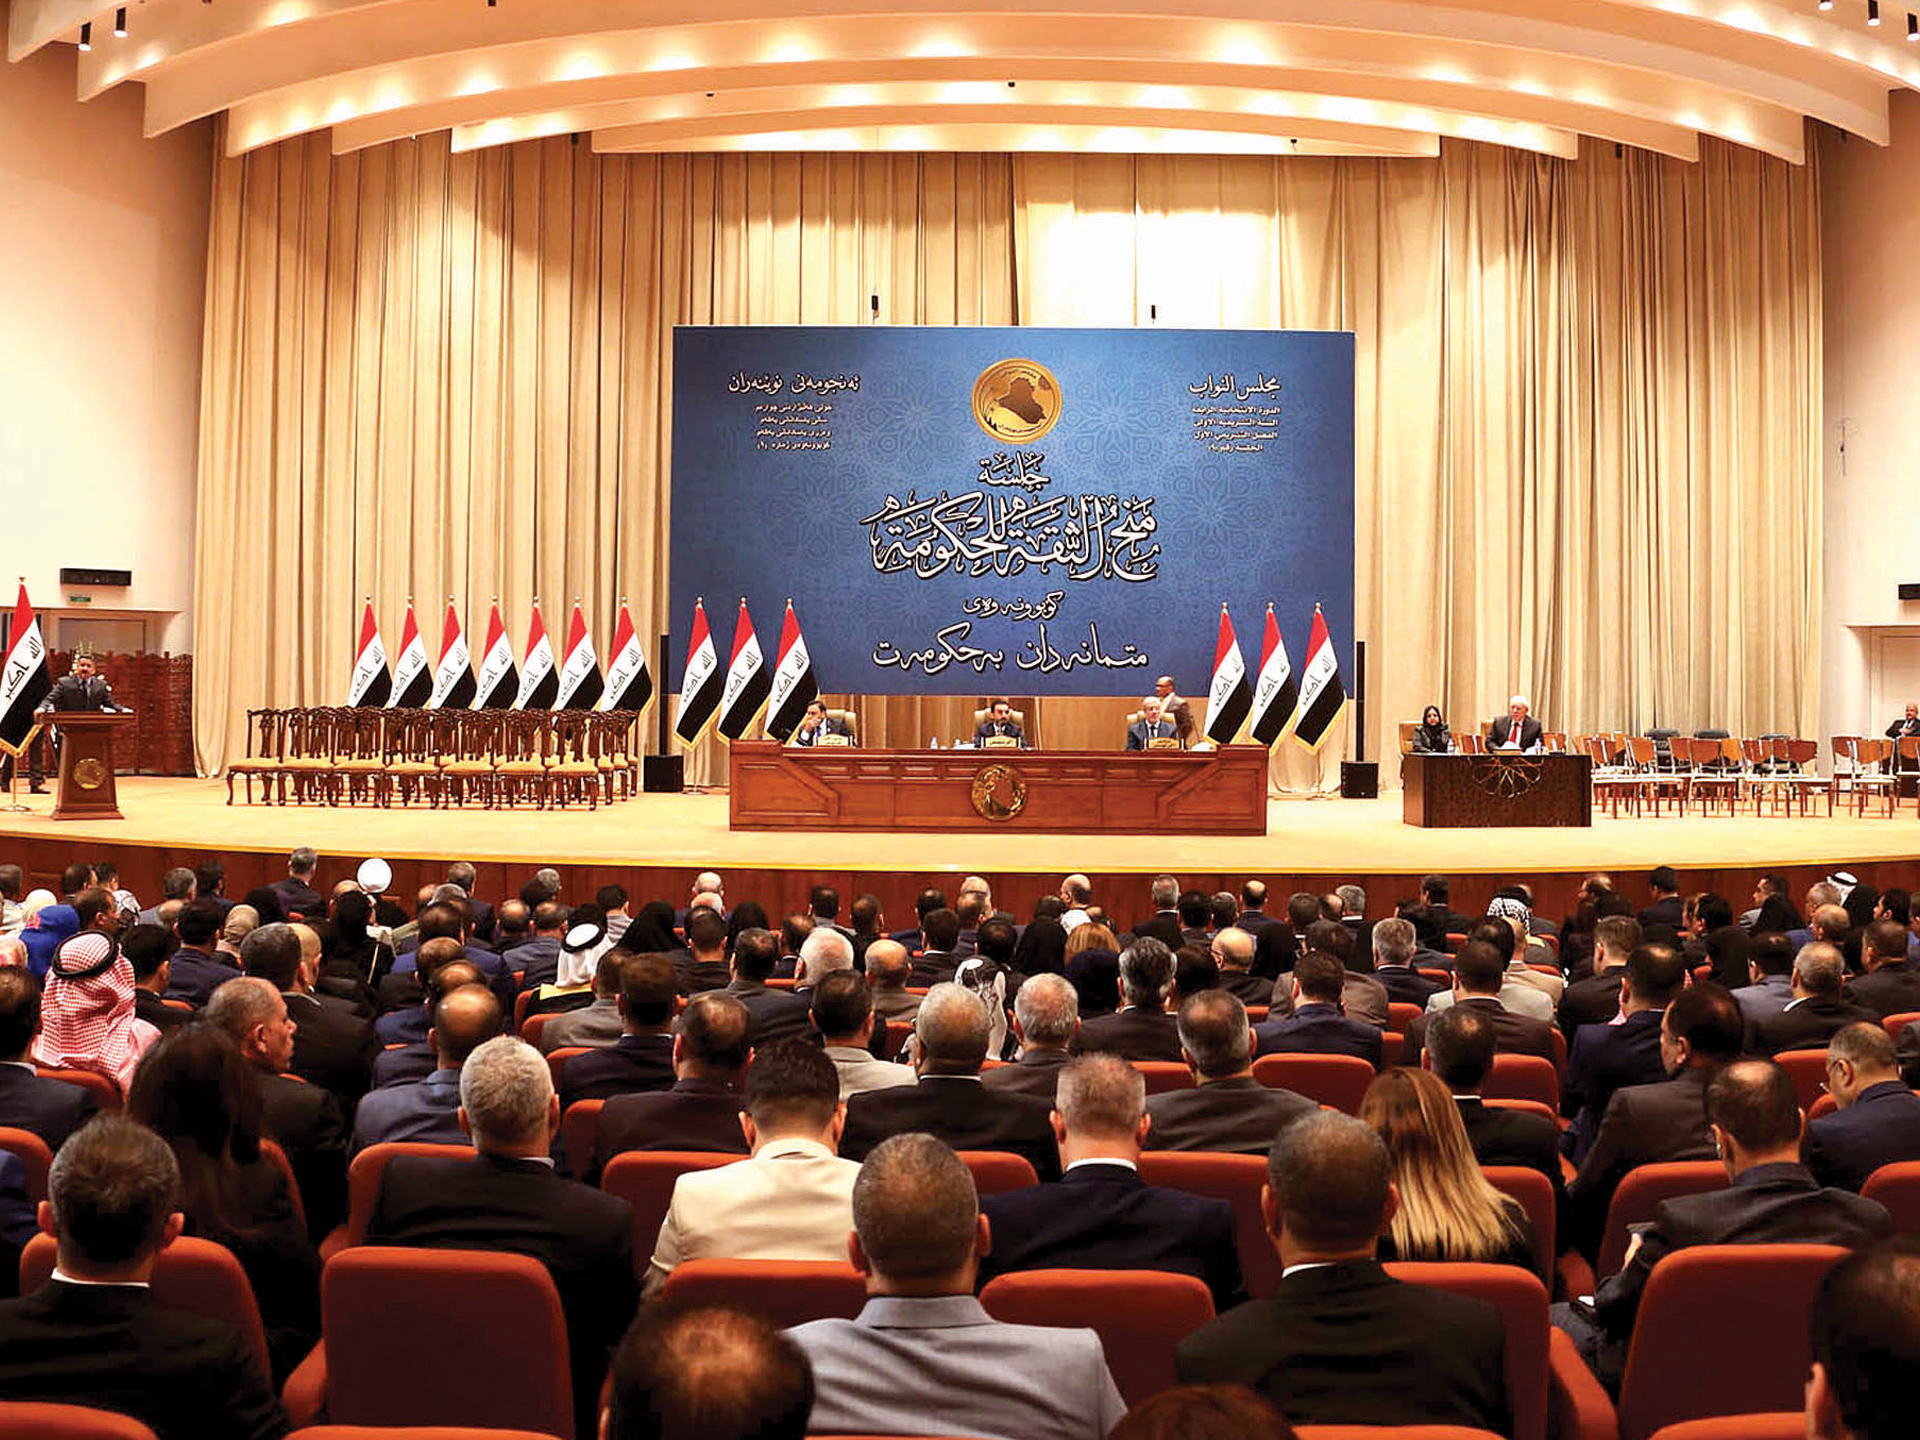 Iraq: New election law officially ratified %D8%A7%D9%84%D8%A8%D8%B1%D9%84%D9%85%D8%A7%D9%86-%D8%A7%D9%84%D8%B9%D8%B1%D8%A7%D9%82%D9%8A-%D9%8A%D8%B3%D8%B9%D9%89-%D9%84%D9%85%D8%AD%D8%A7%D8%B3%D8%A8%D8%A9-%D8%A7%D9%84%D8%B3%D8%B9%D9%88%D8%AF%D9%8A%D8%A9-%D8%B9%D9%84%D9%89-%D8%AC%D8%B1%D8%A7%D8%A6%D9%85%D9%87%D8%A7-%D8%A7%D9%84%D8%A7%D8%B1%D9%87%D8%A7%D8%A8%D9%8A%D8%A9